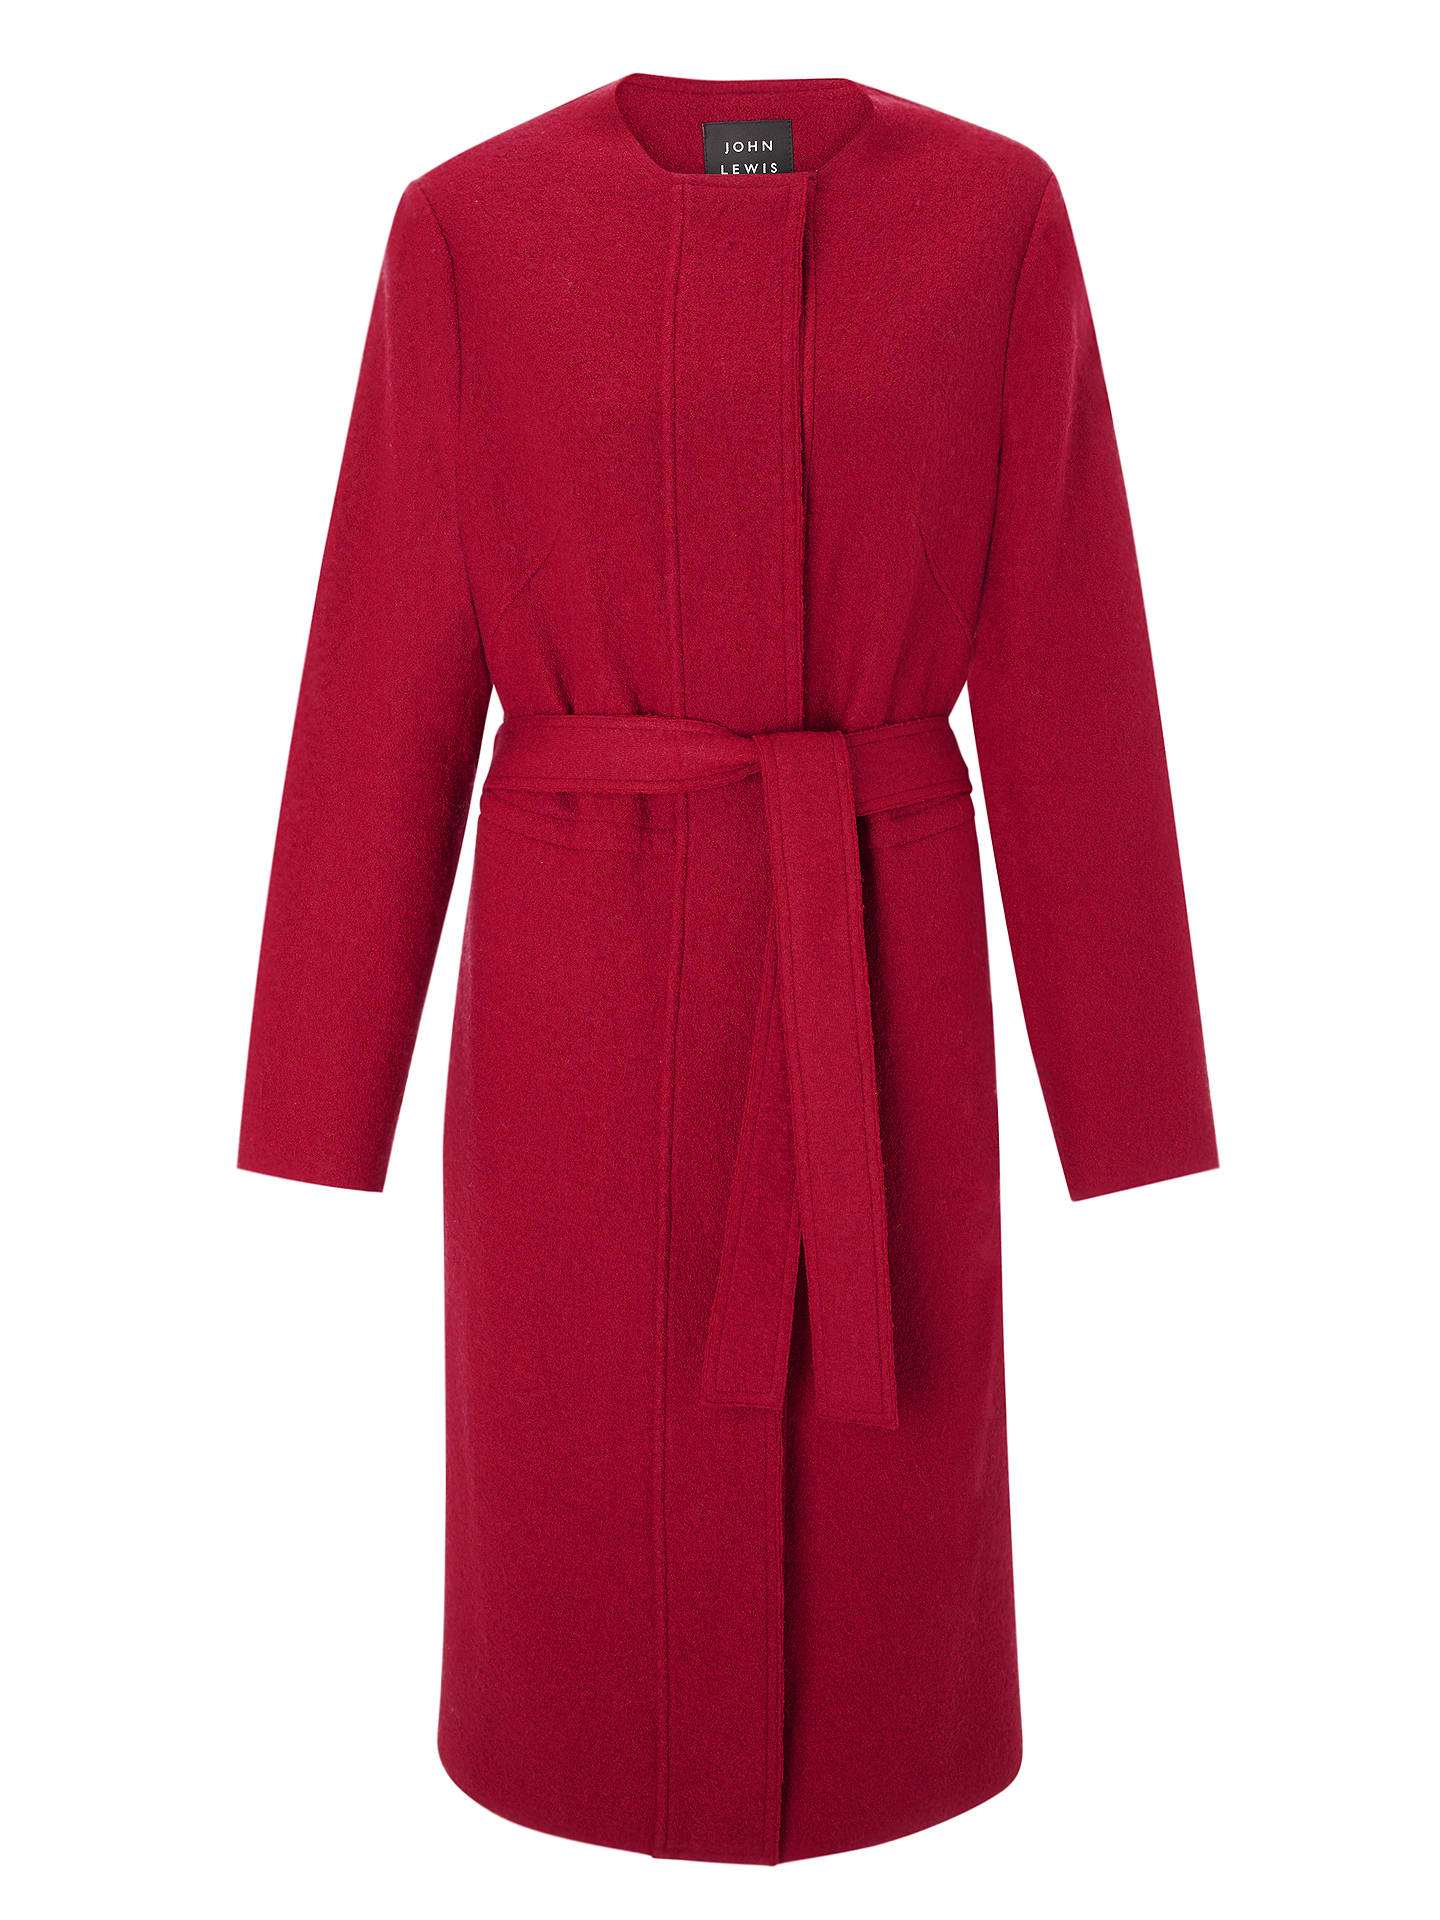 Buy John Lewis & Partners Wool Blend Coatigan, Raspberry, L Online at johnlewis.com